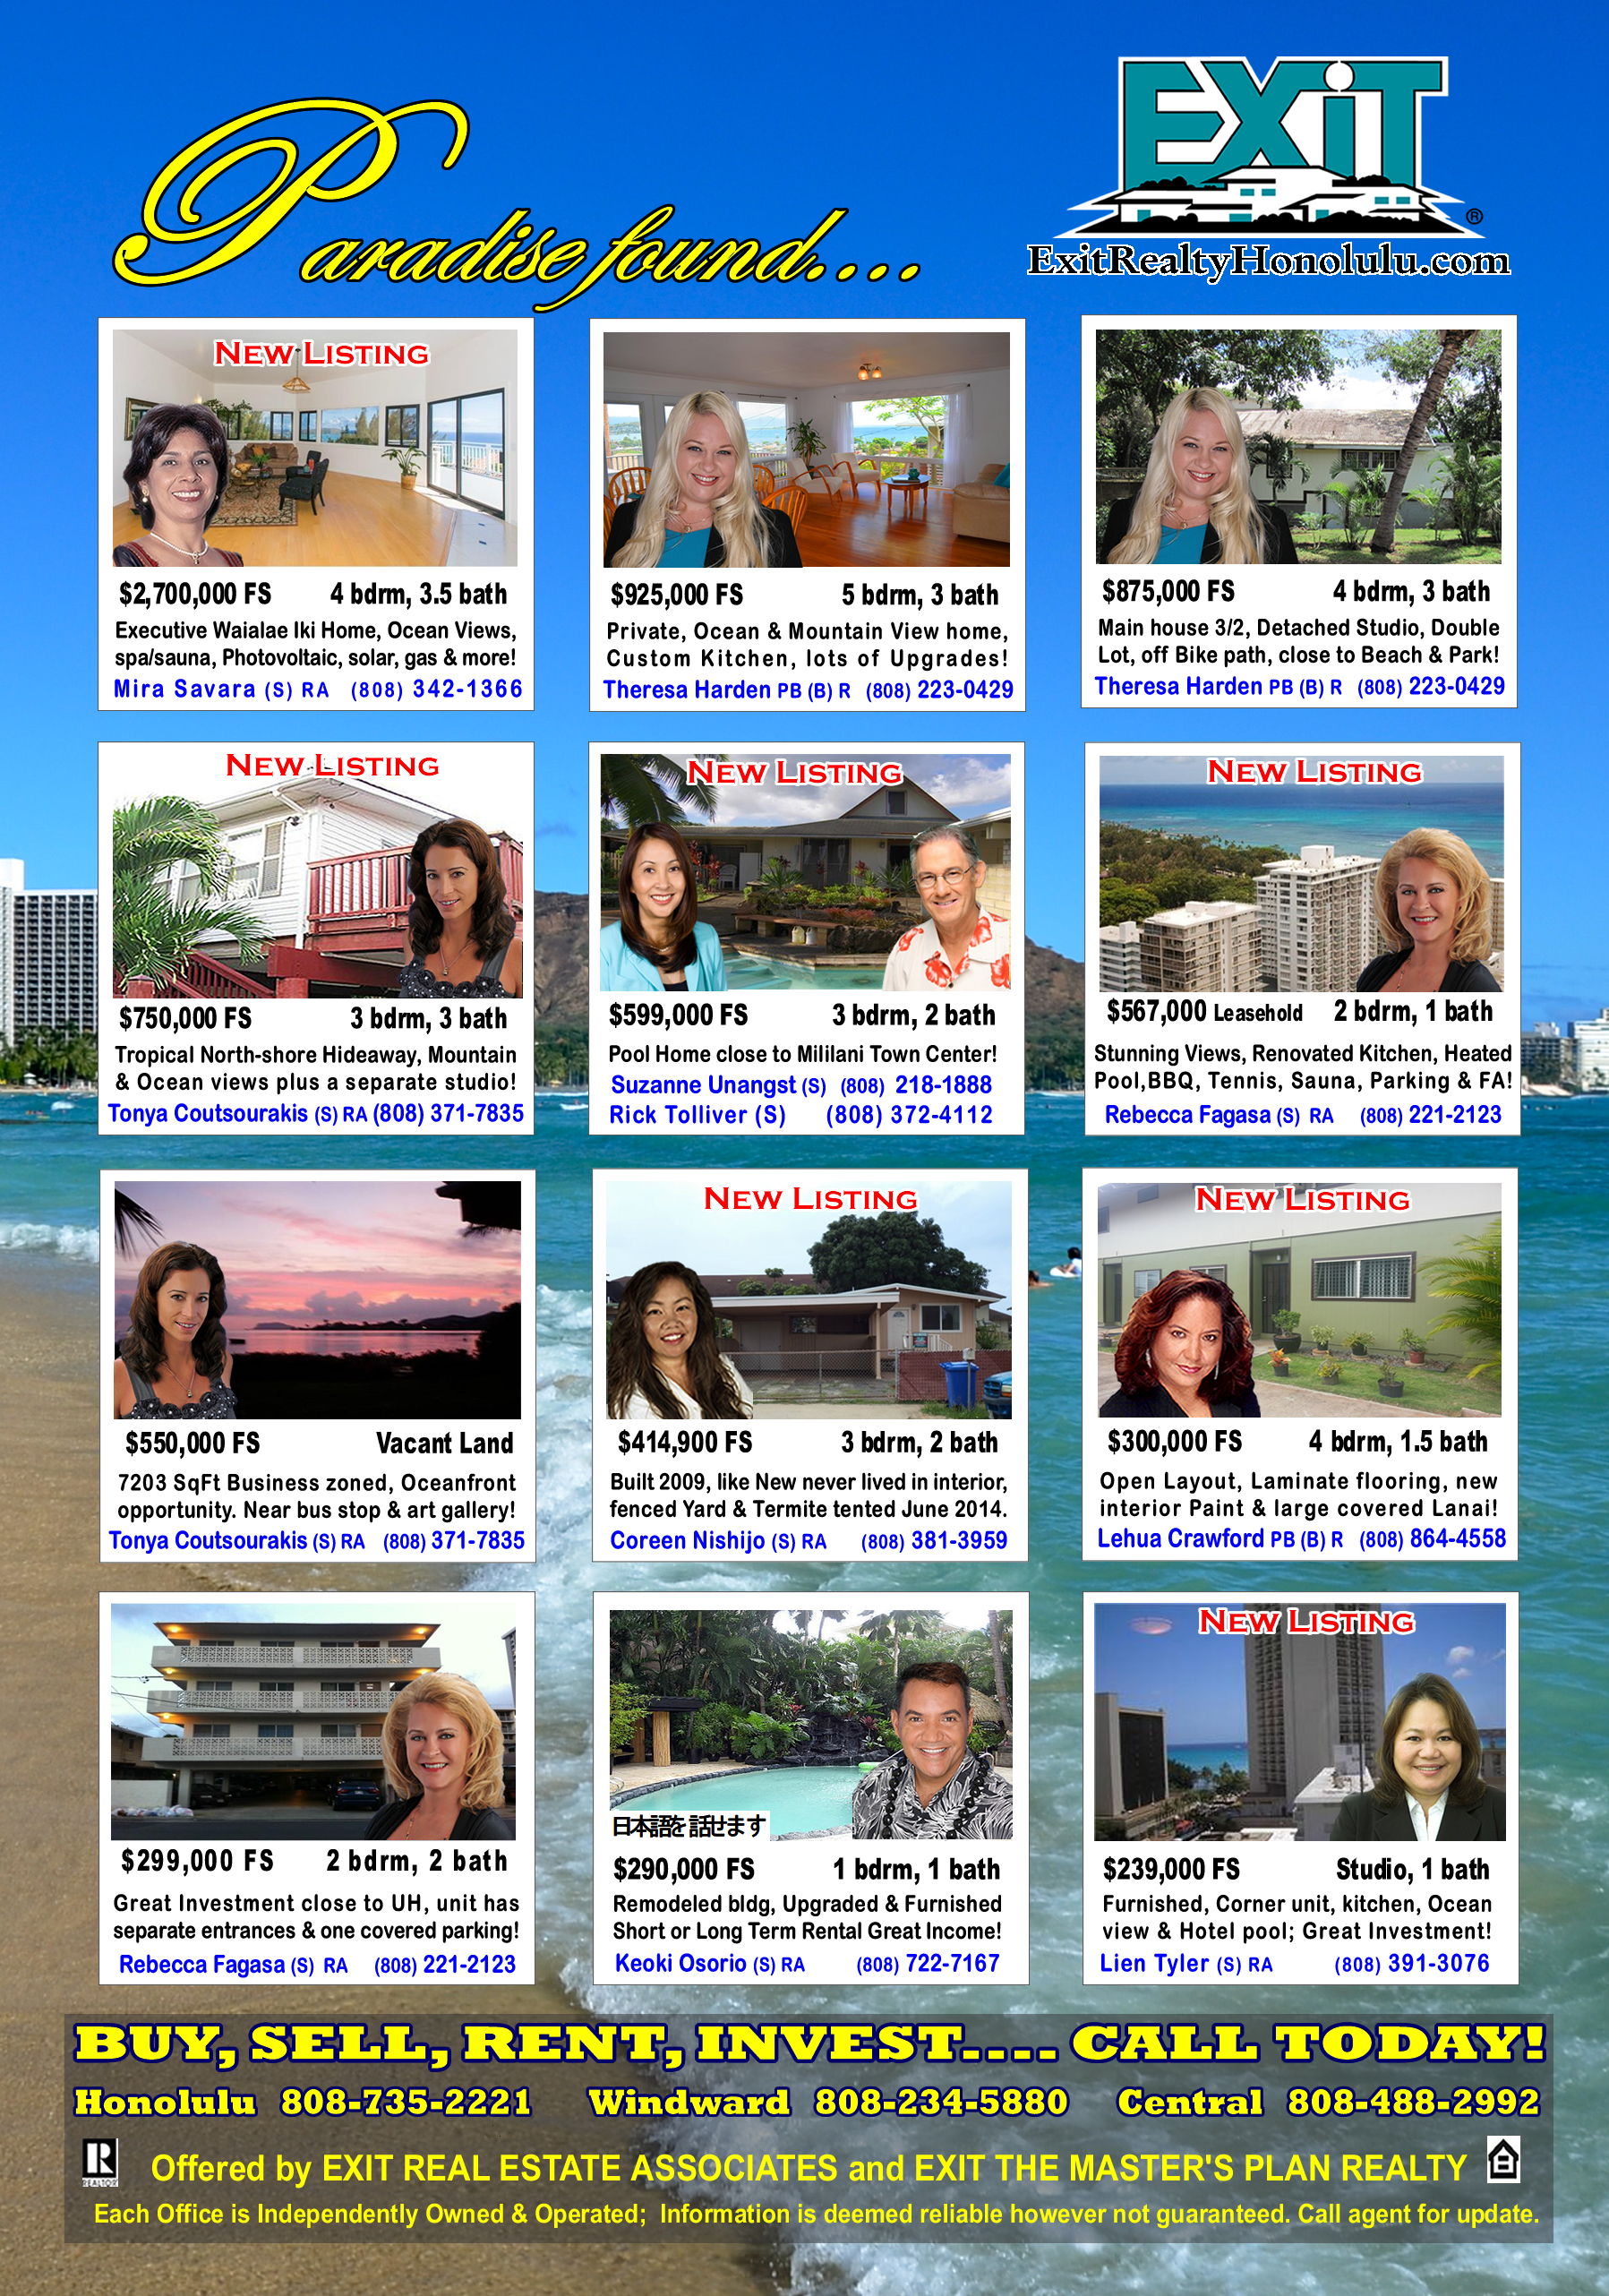 EXIT Realty November 2014 Hawaii Featured Oahu Homes For Sale